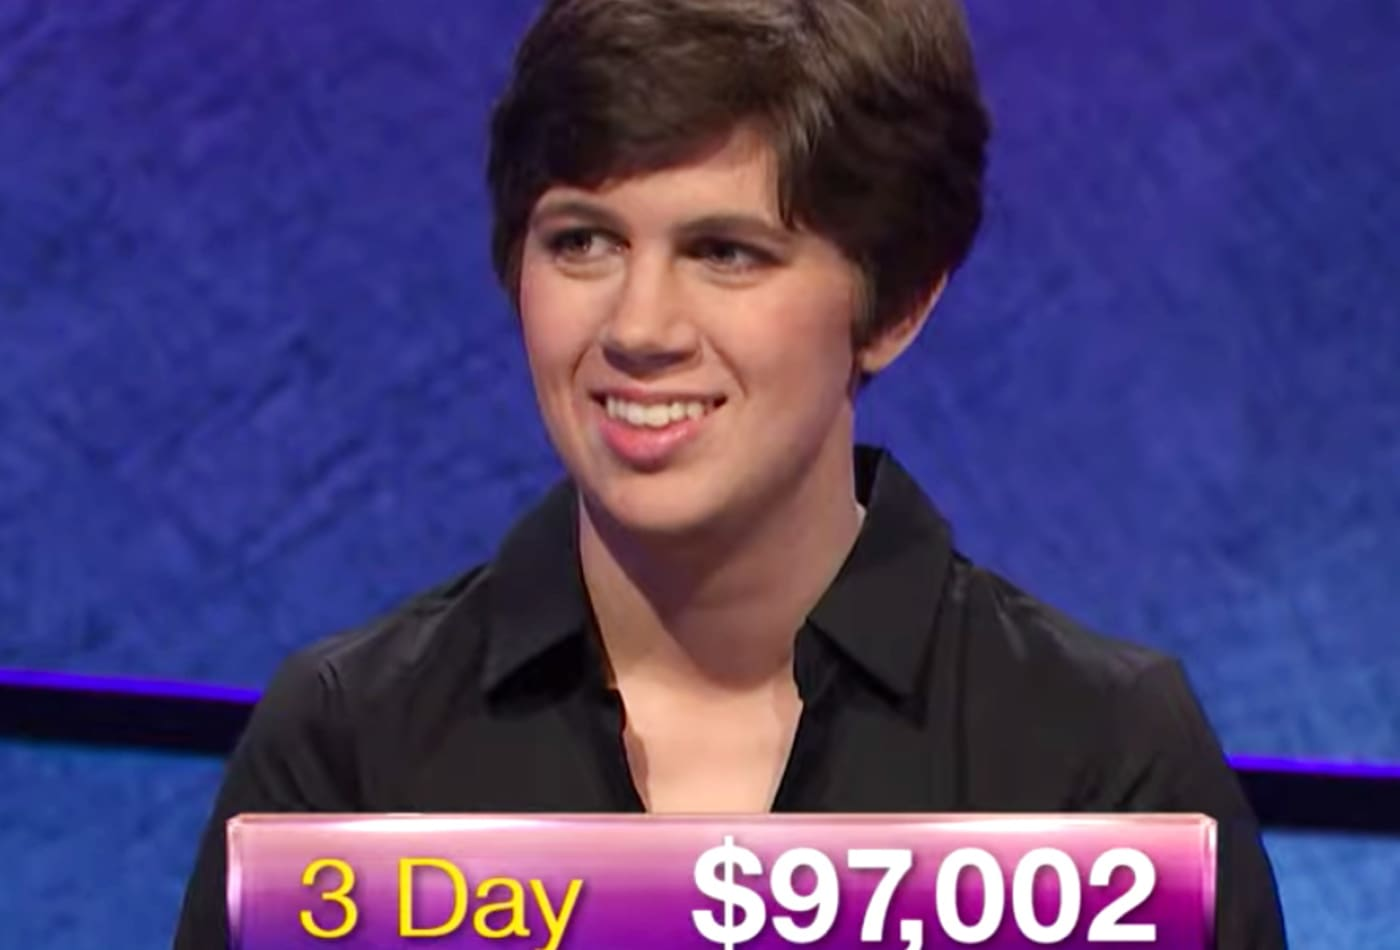 27-Year-Old Who Beat Holzhauer at Jeopardy! Will Pay Off